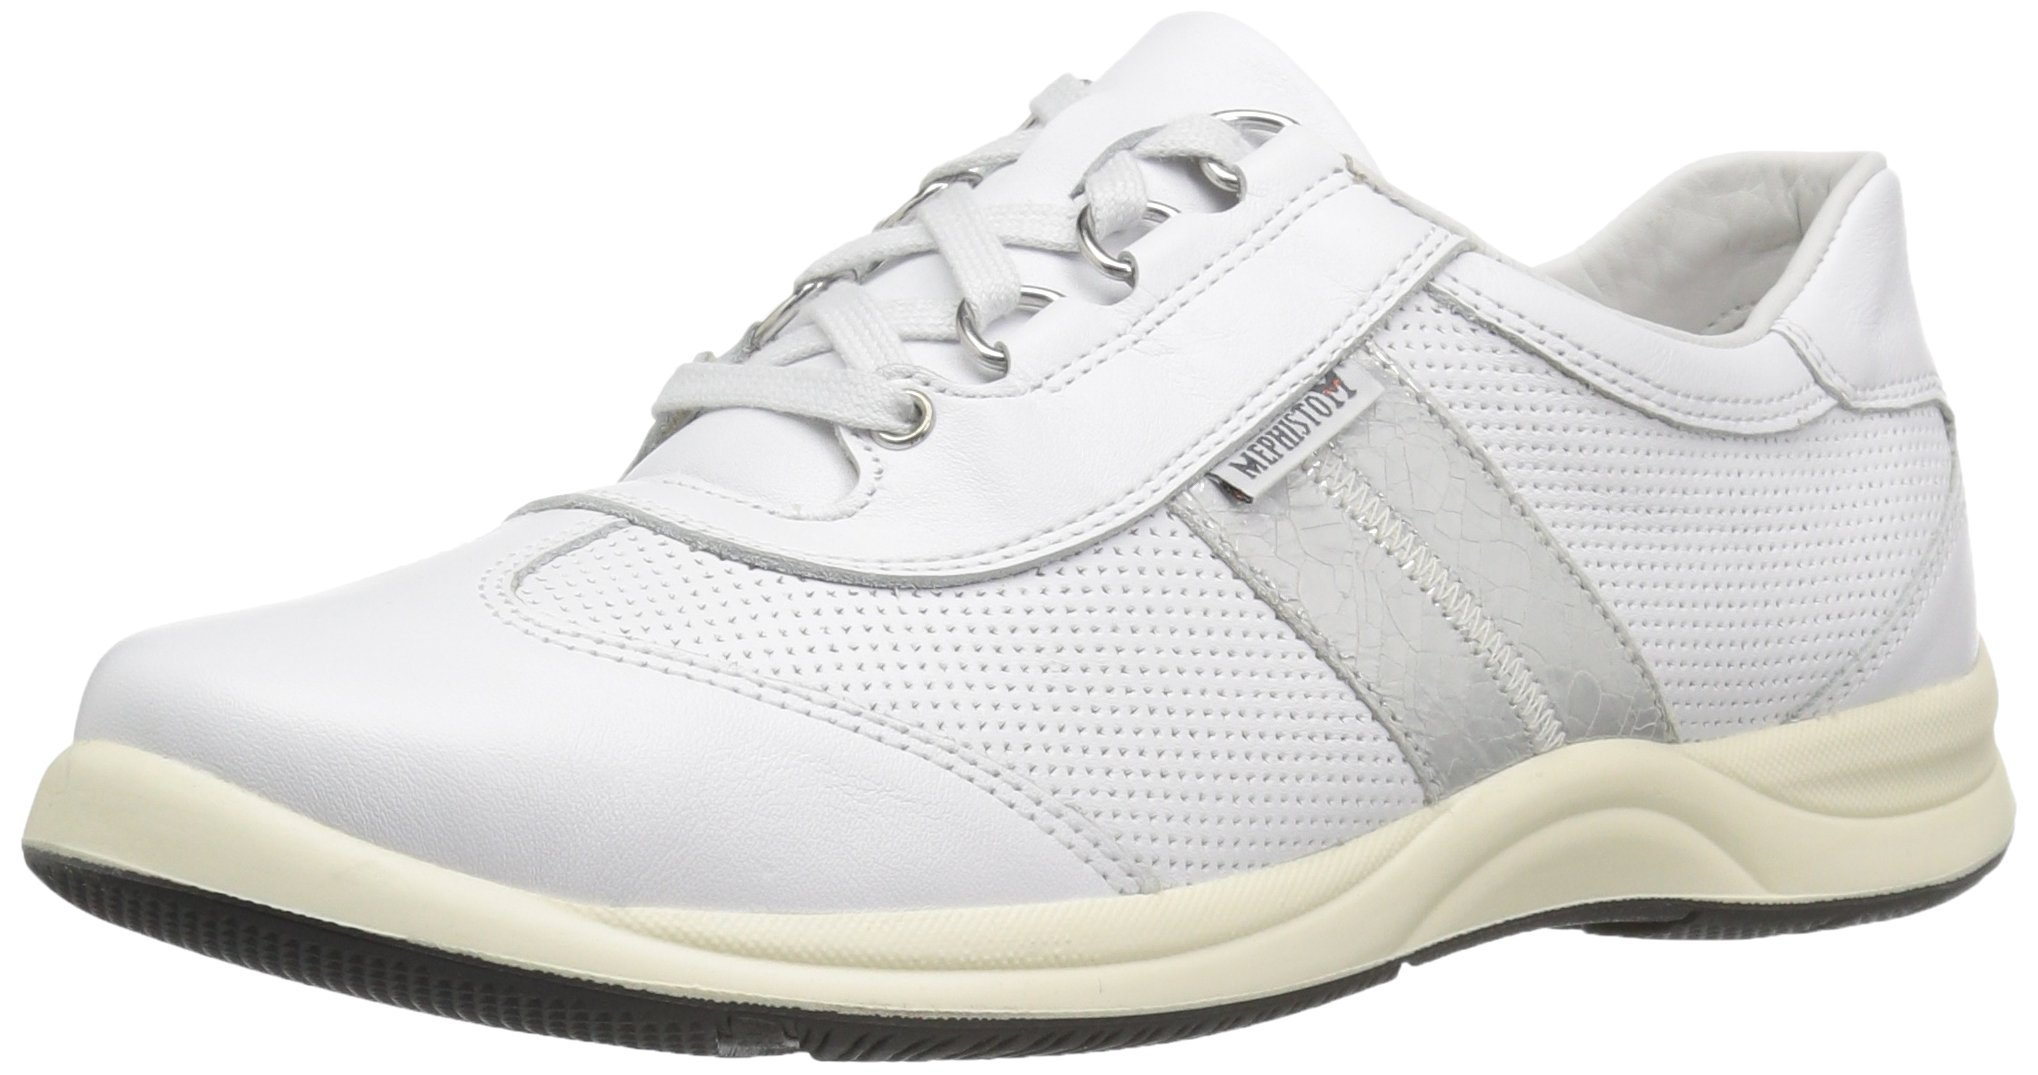 Mephisto Women's Laser Perf Oxford, White Smooth/Silver Ice, 8.5 M US